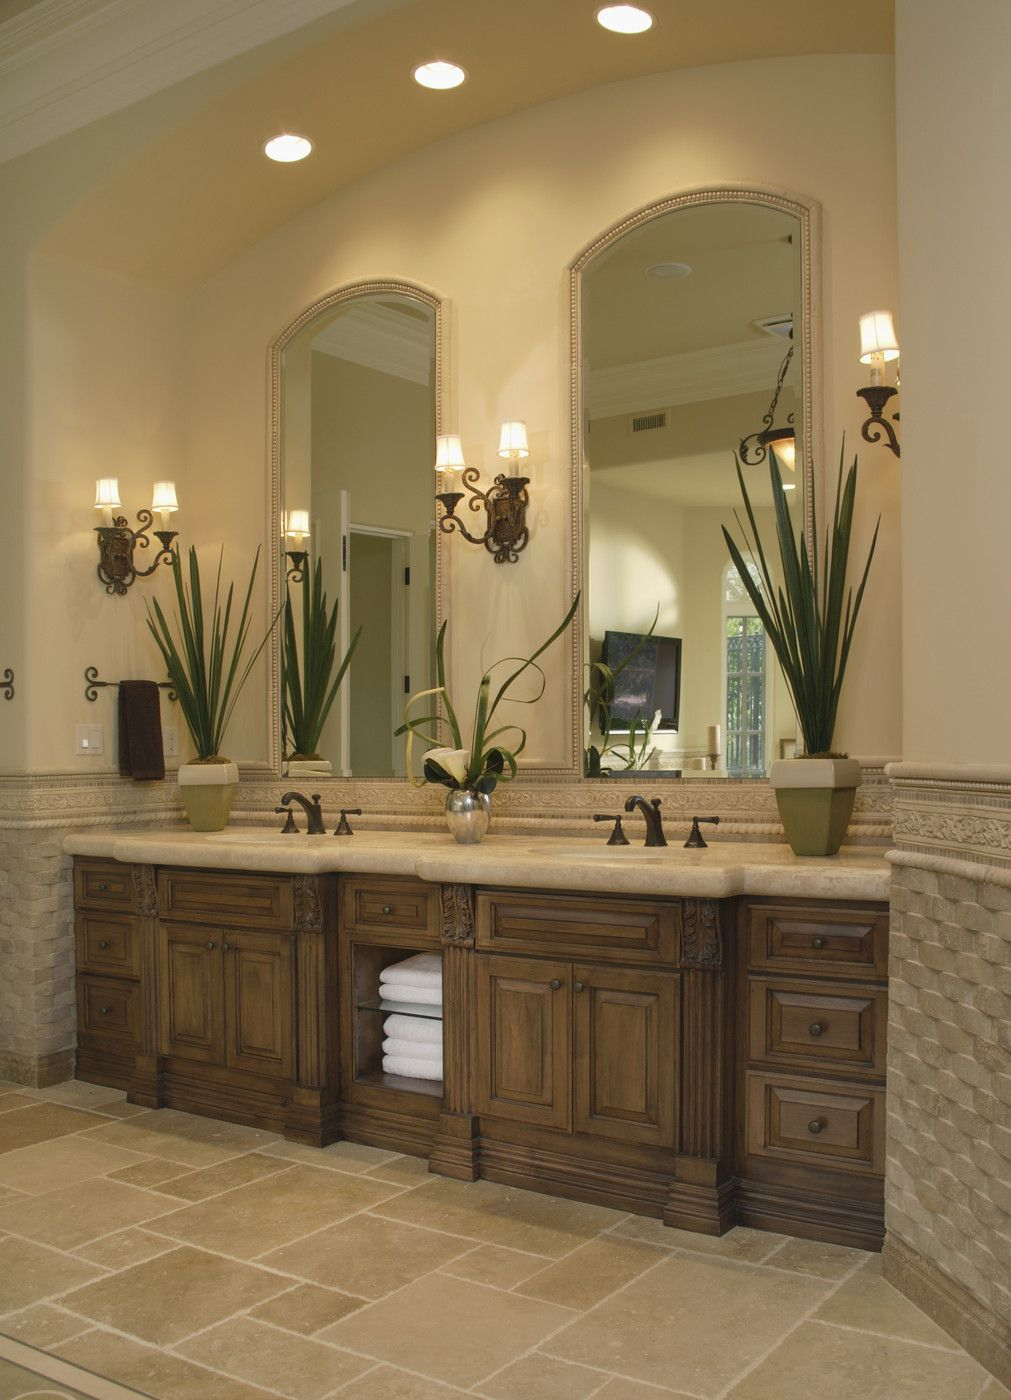 Rise and shine bathroom vanity lighting tips light up the area evenly aloadofball